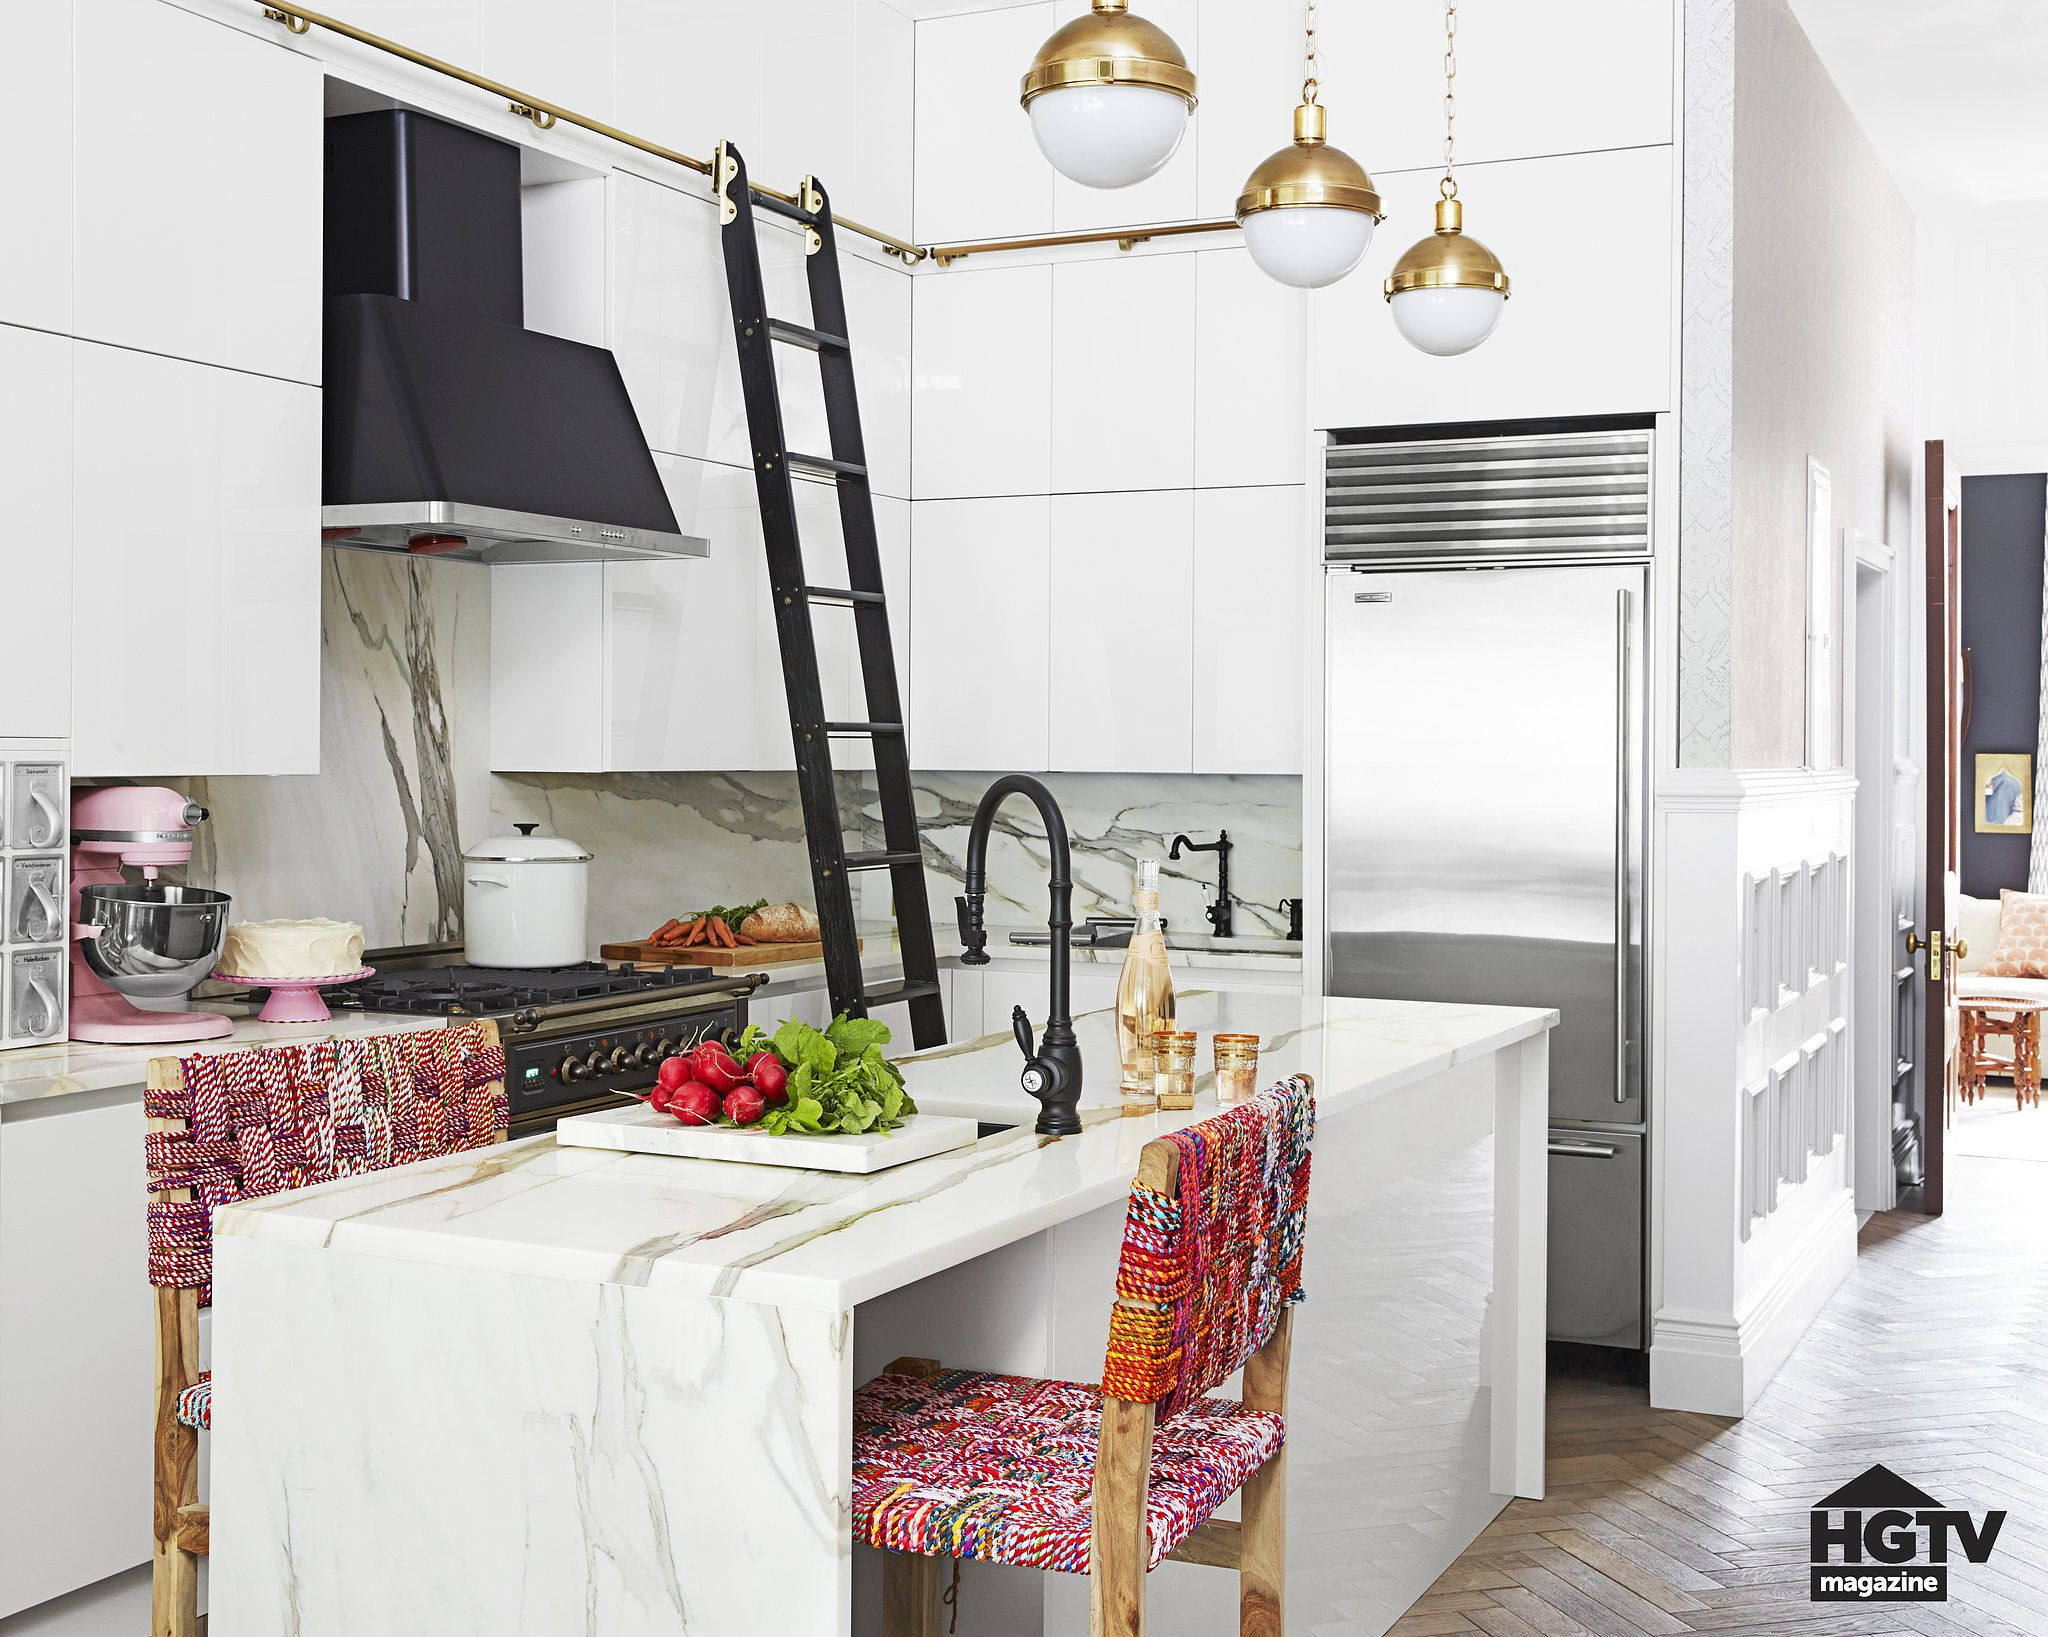 Add a Library Ladder | Library ladder, Storage and Kitchens